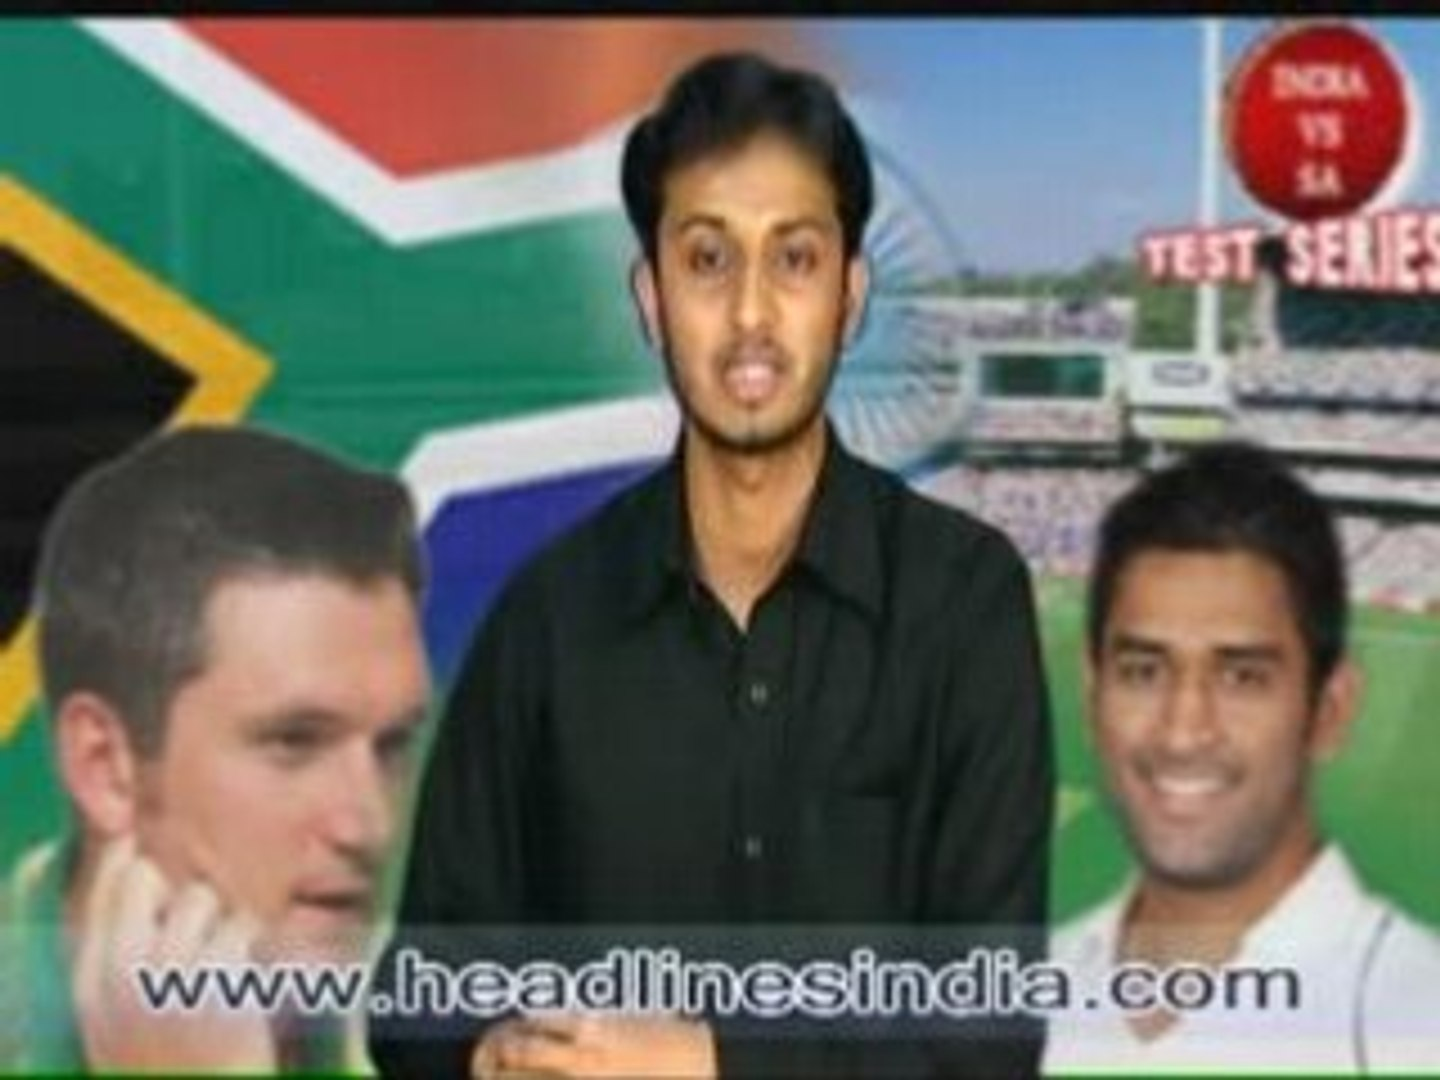 India South Africa Test, India News